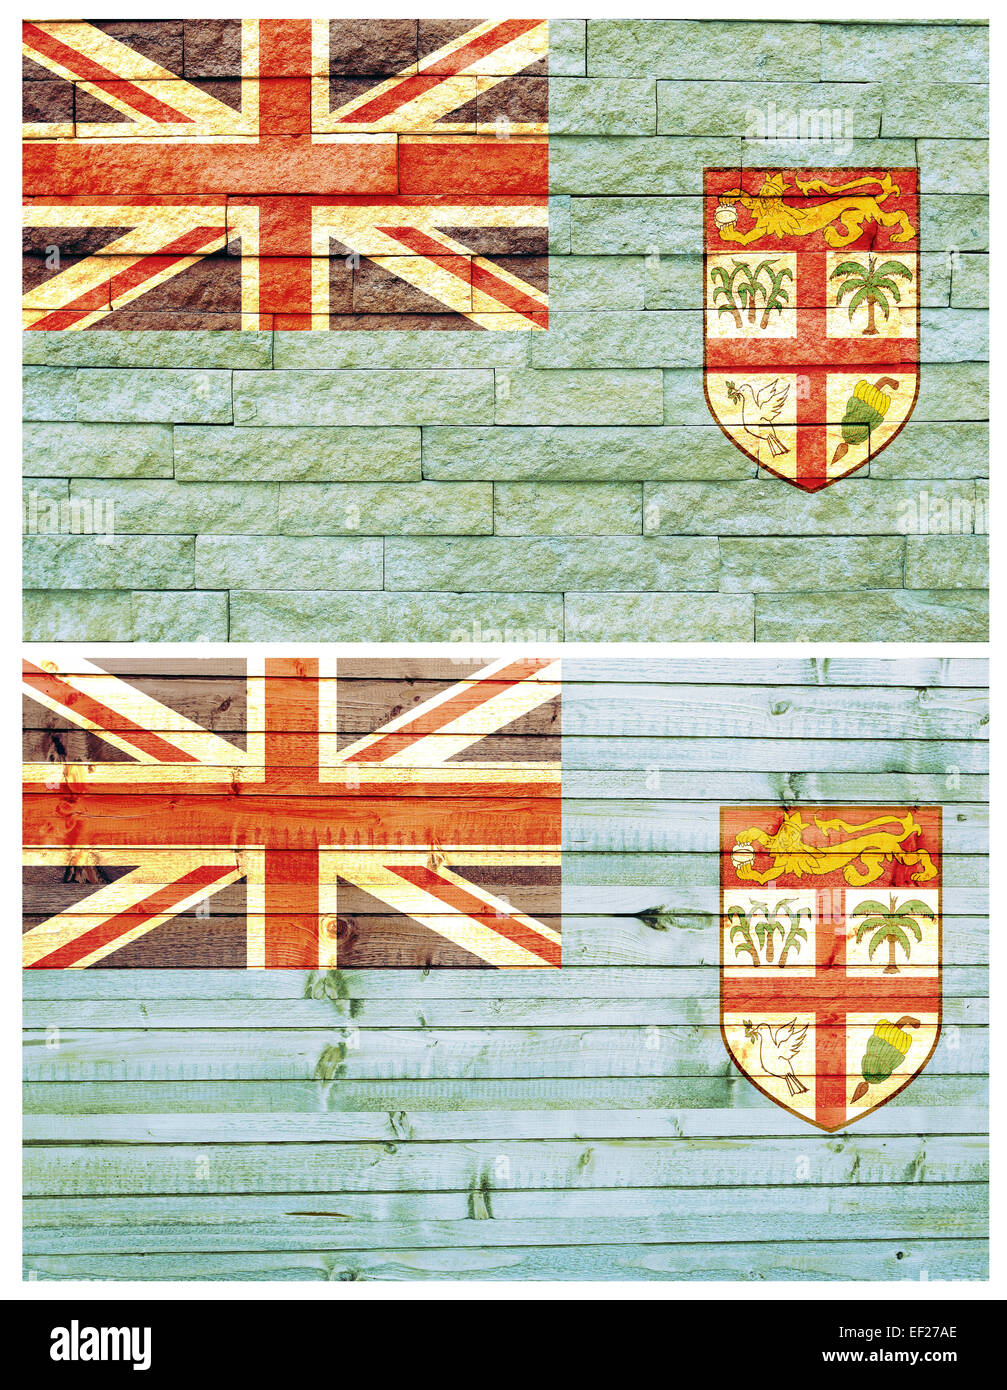 Vintage wall flag of Fiji - Stock Image